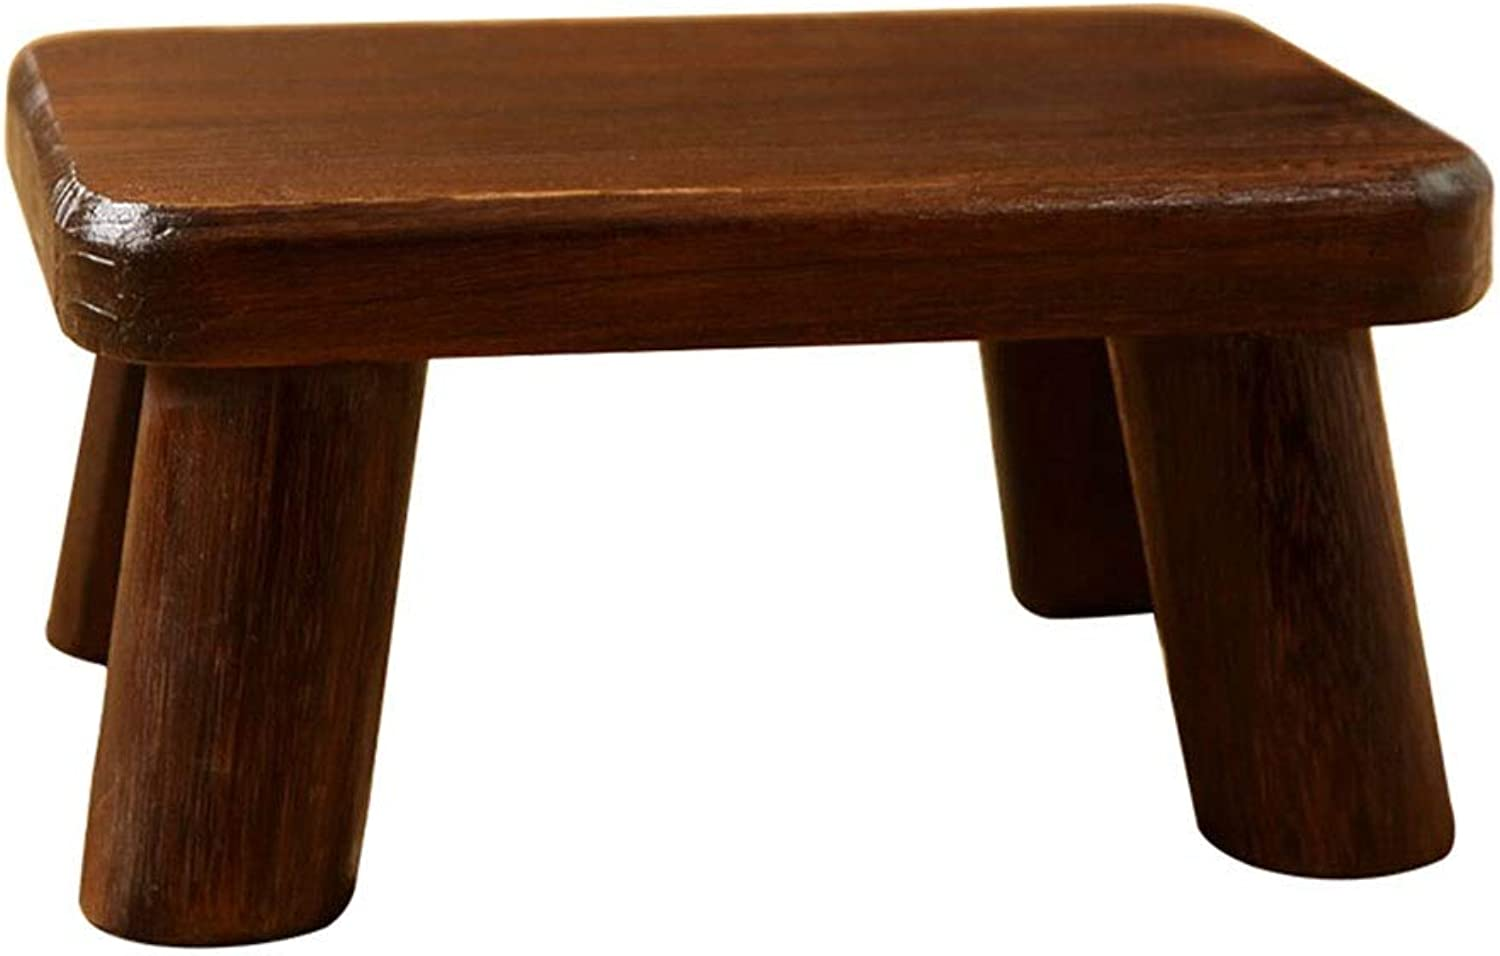 Small Stool-Retro shoes Bench Stool Multi-Function Stool Wood Small Bench Home Coffee Table Stool FENPING (color   Dark Brown, Size   36  25.6  18cm)